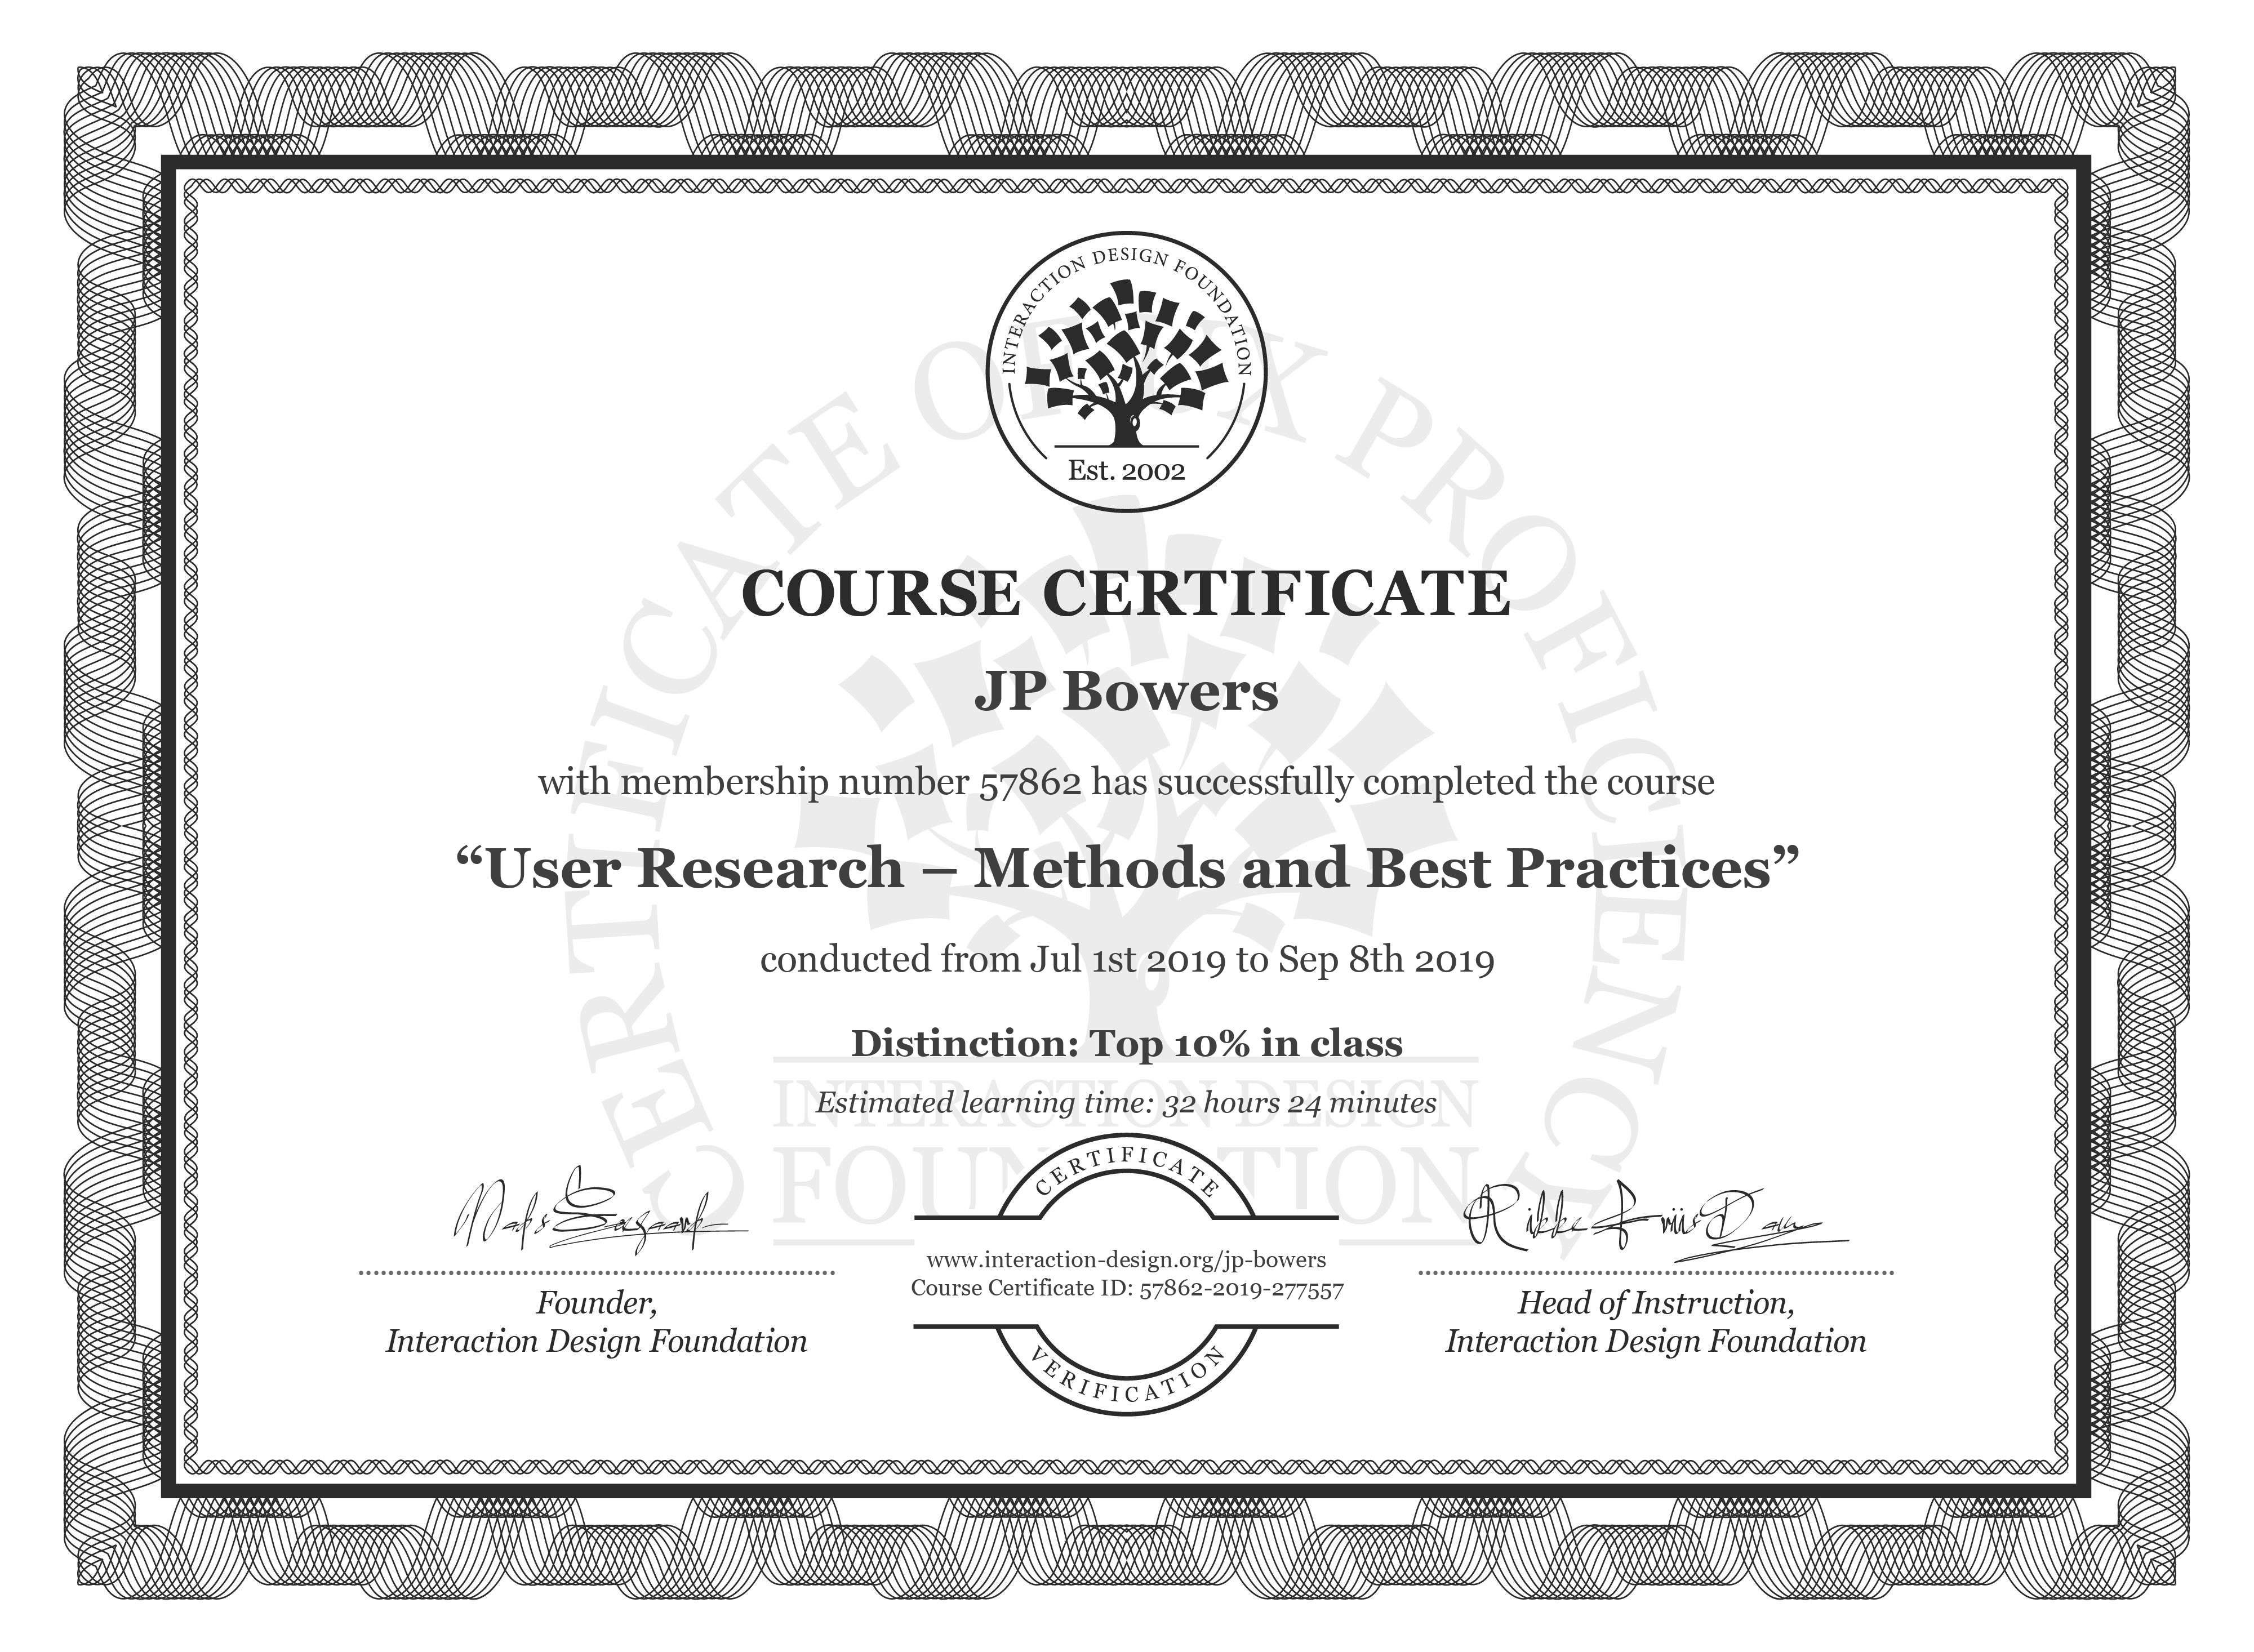 JP Bowers: Course Certificate - User Research – Methods and Best Practices